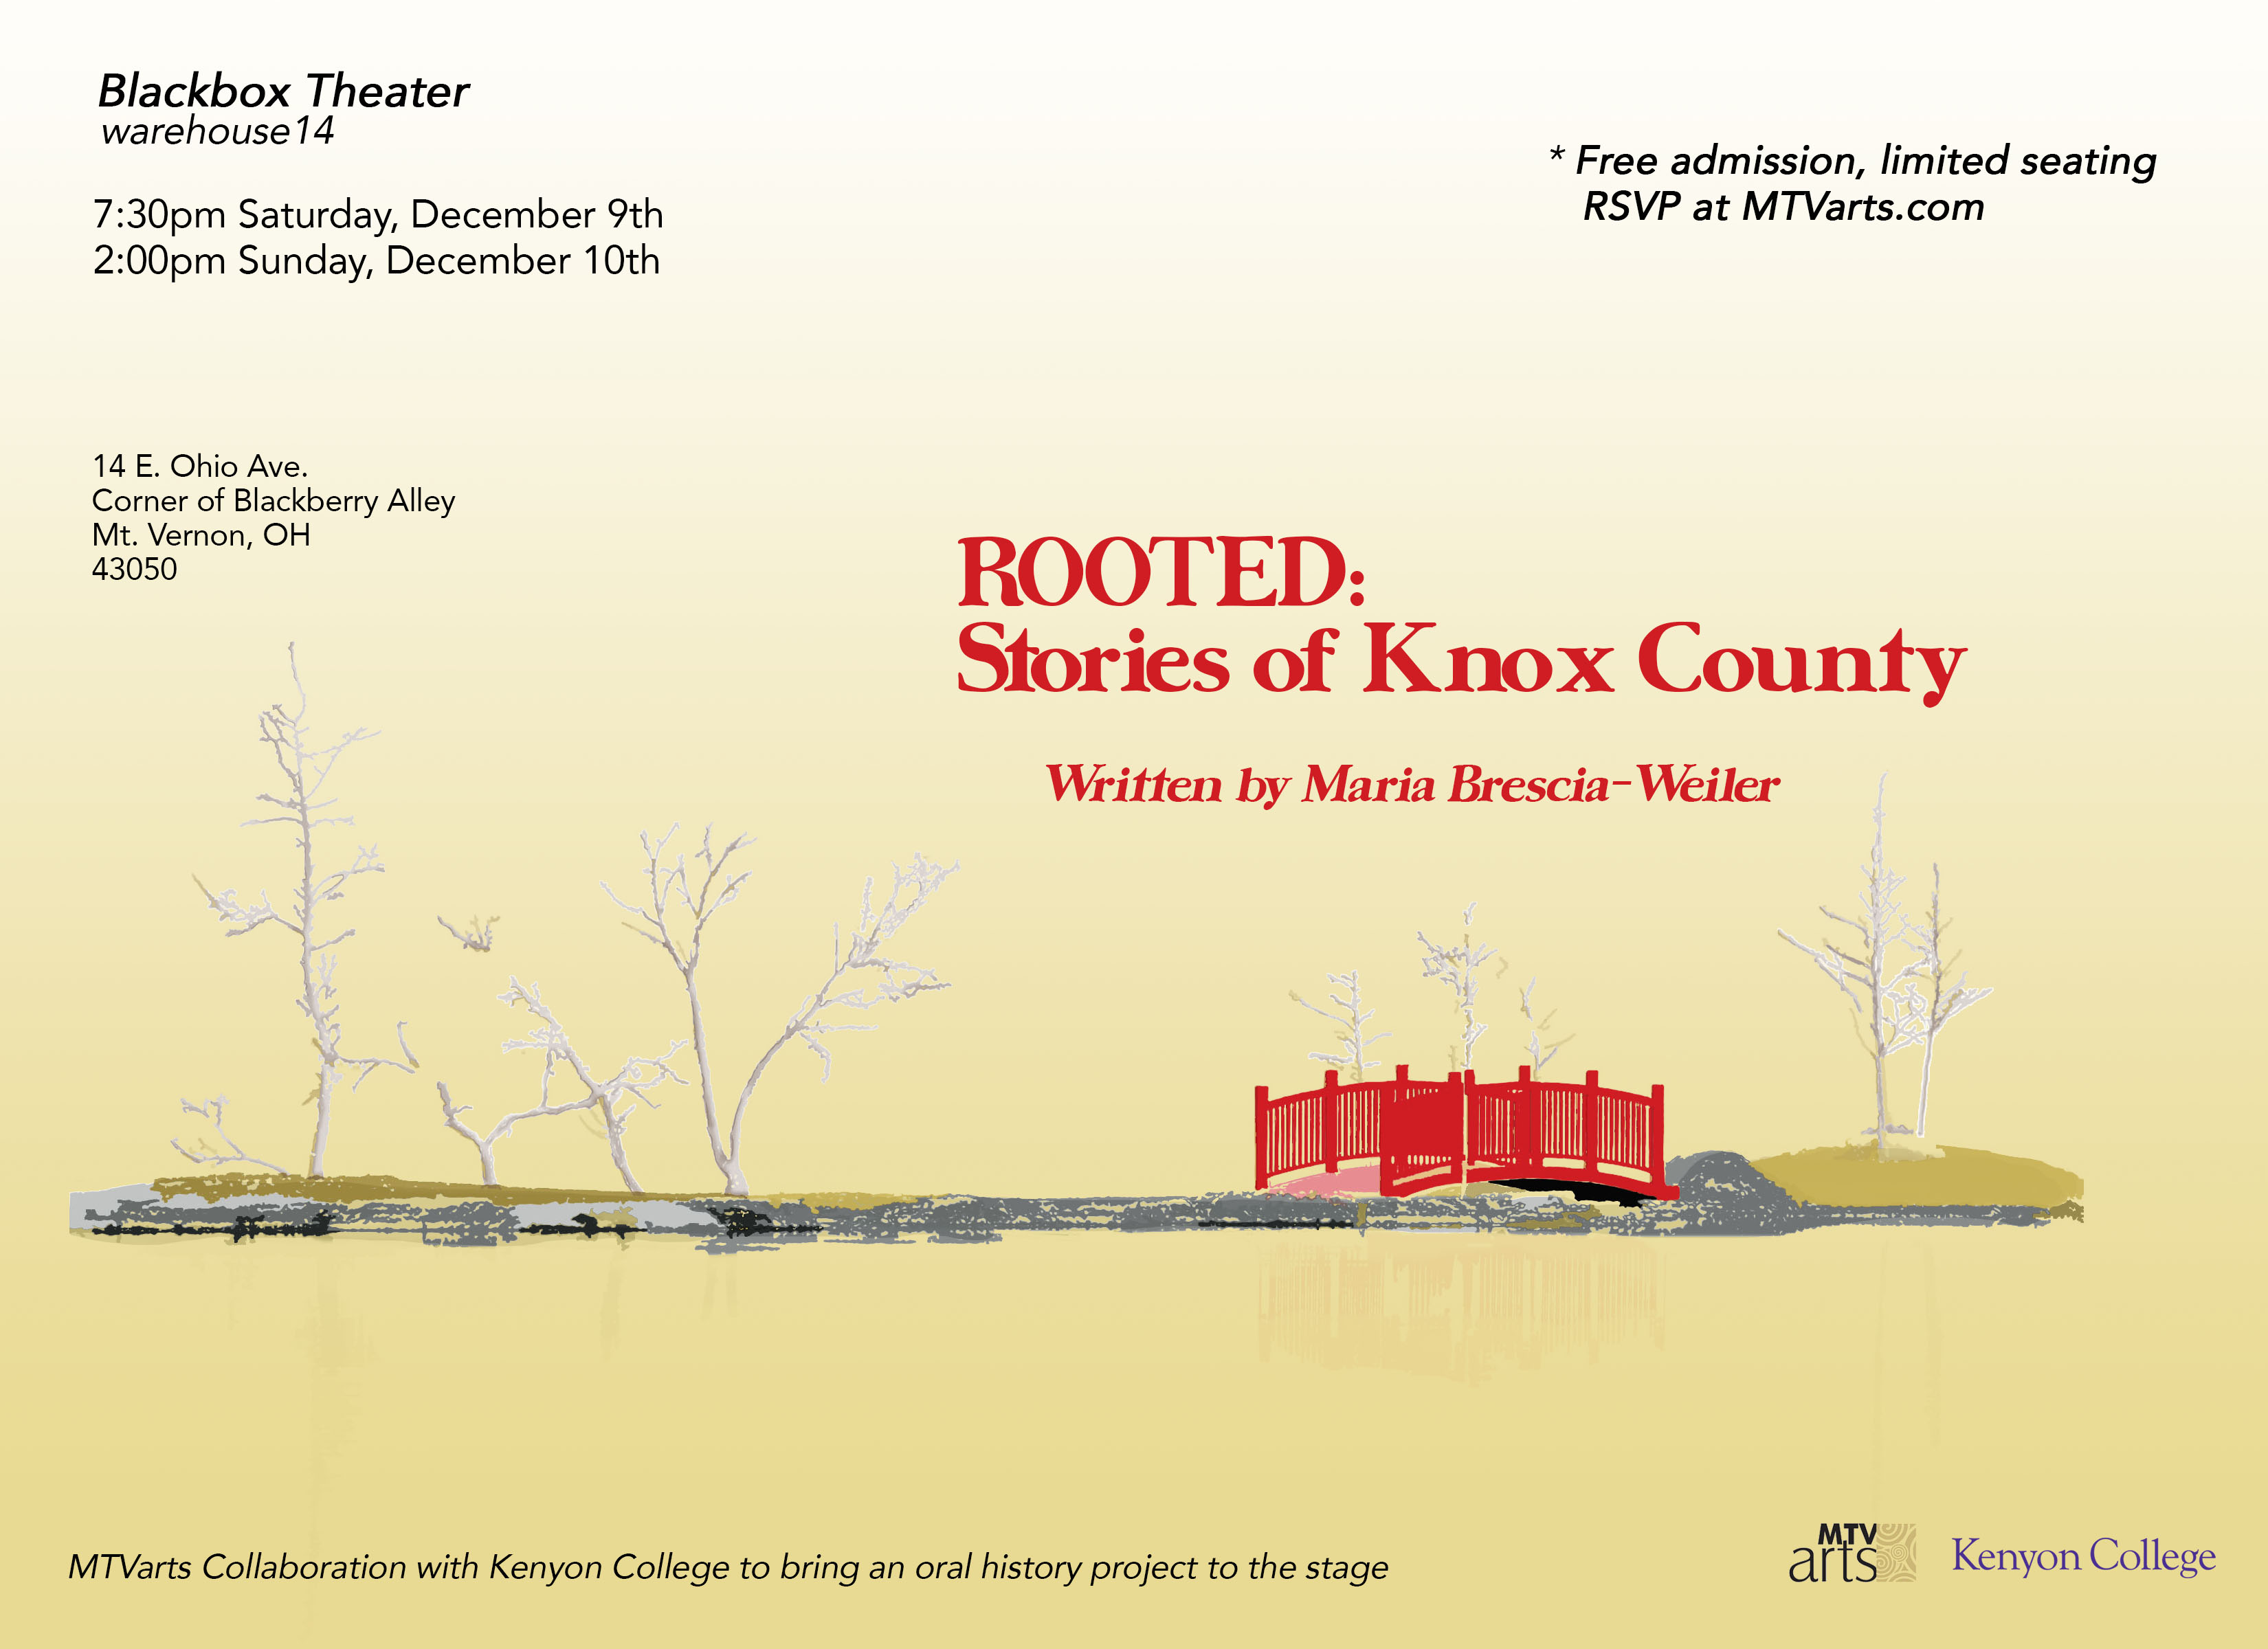 Rooted: Stories of Knox County